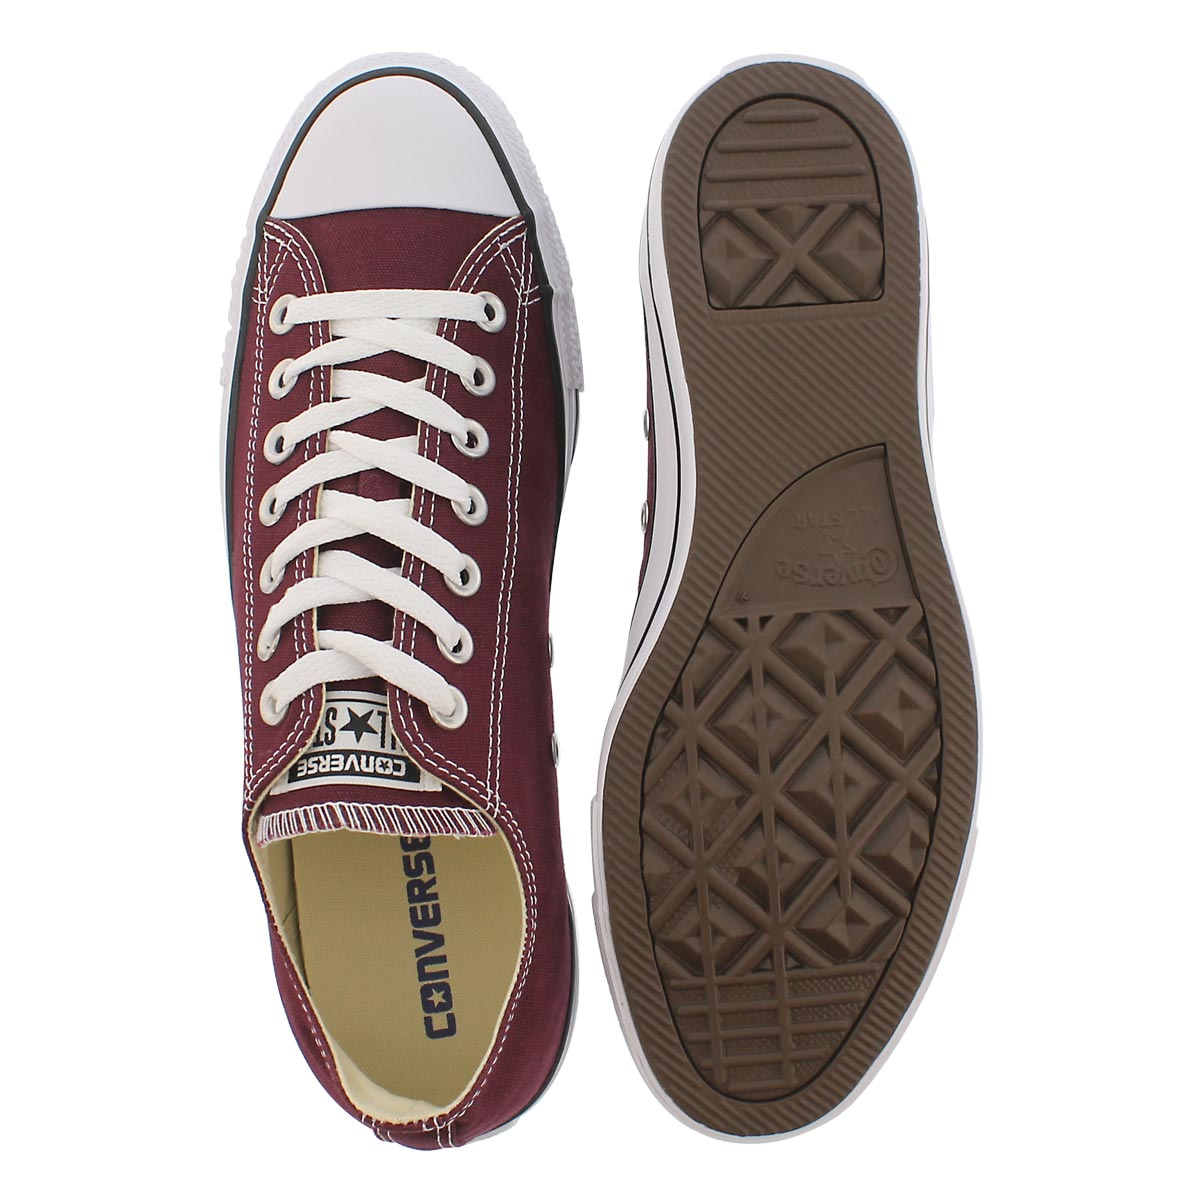 Mns CT All Star Core Ox burgundy sneaker